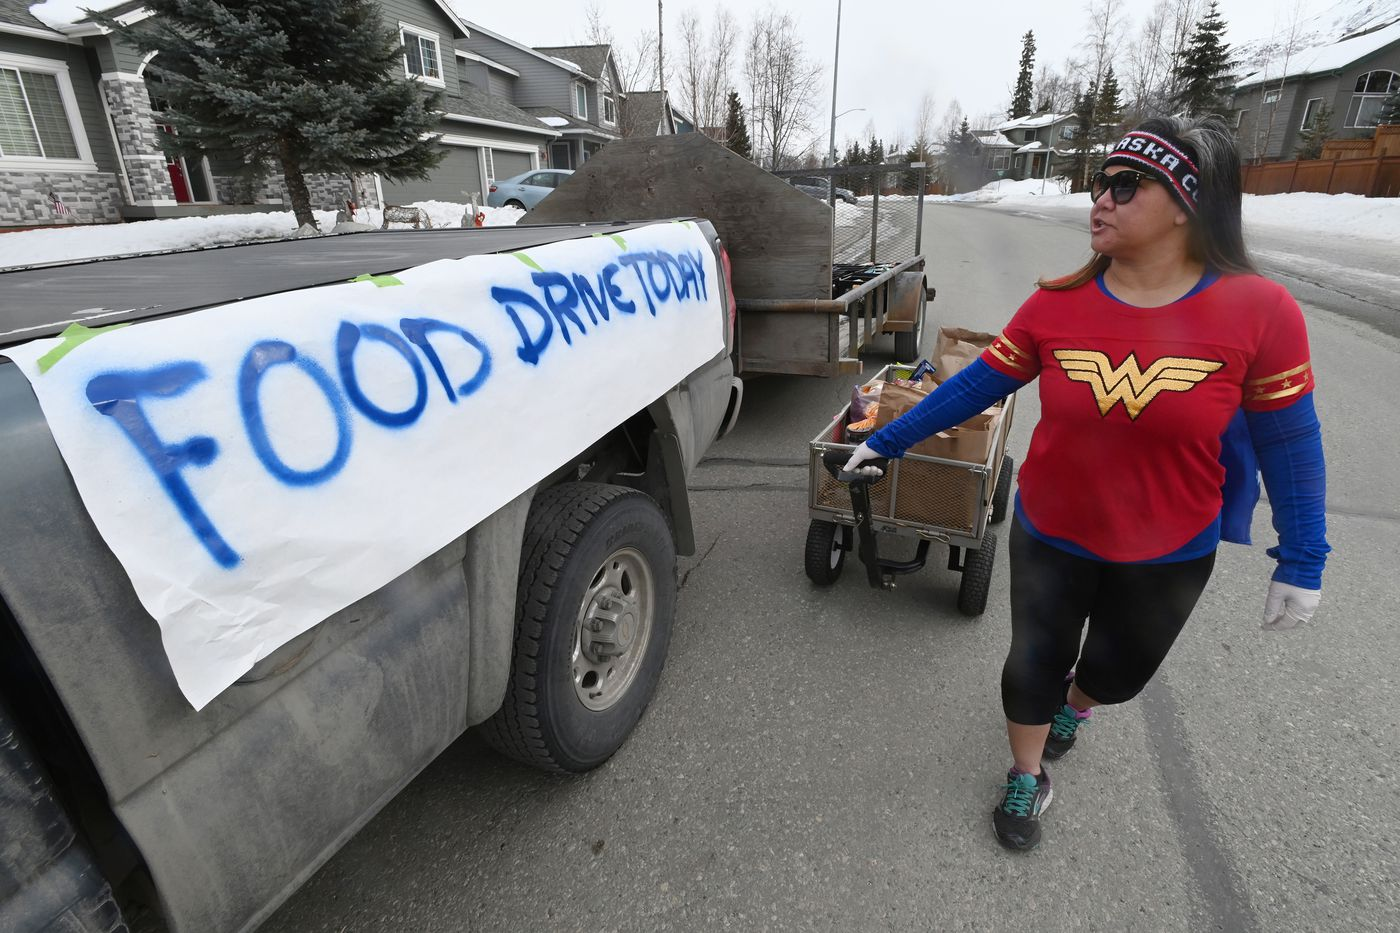 Pheng Scott pulled a cart wearing a Wonder Woman shirt and a cape as she helped collect donated food by her neighbors in the Eagle Pointe subdivision nestled behind Eagle River High School on Wednesday, April 1, 2020. (Bill Roth / ADN)